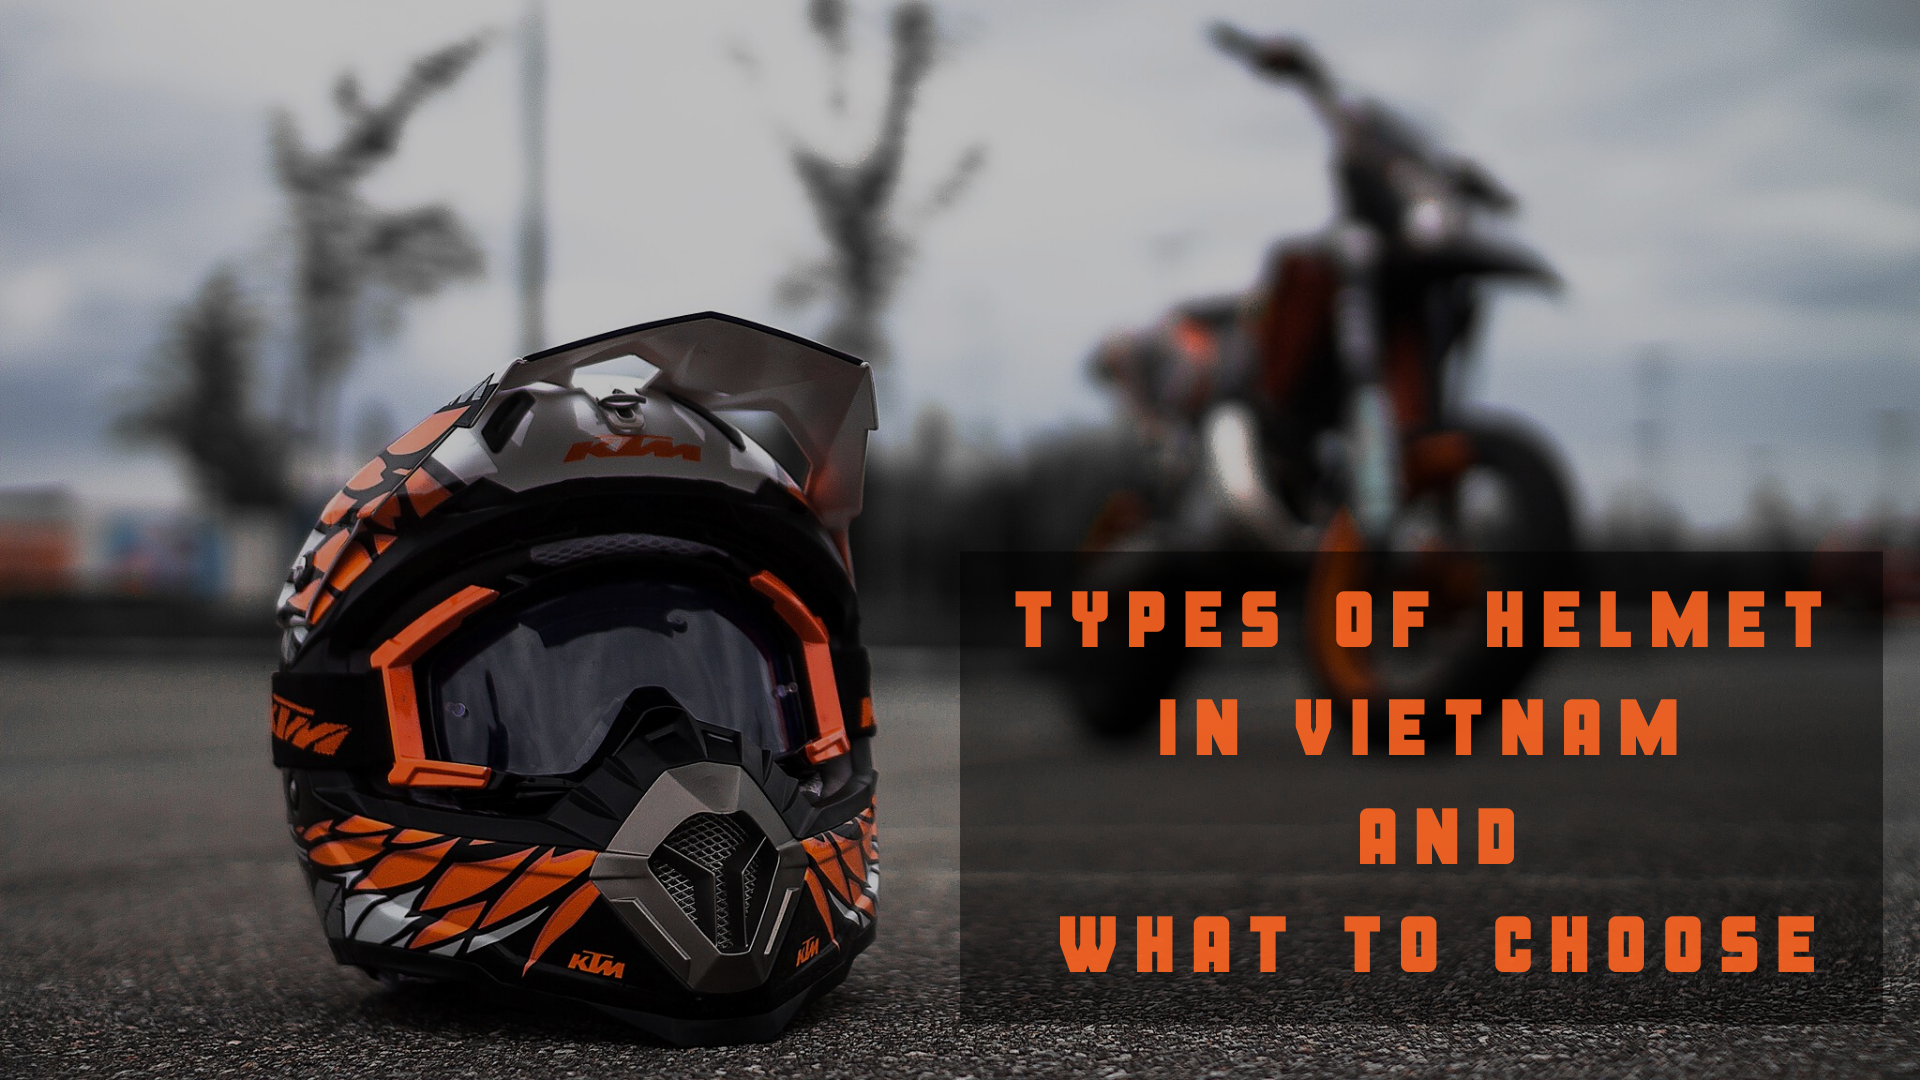 Types of helmet in Vietnam and what to choose